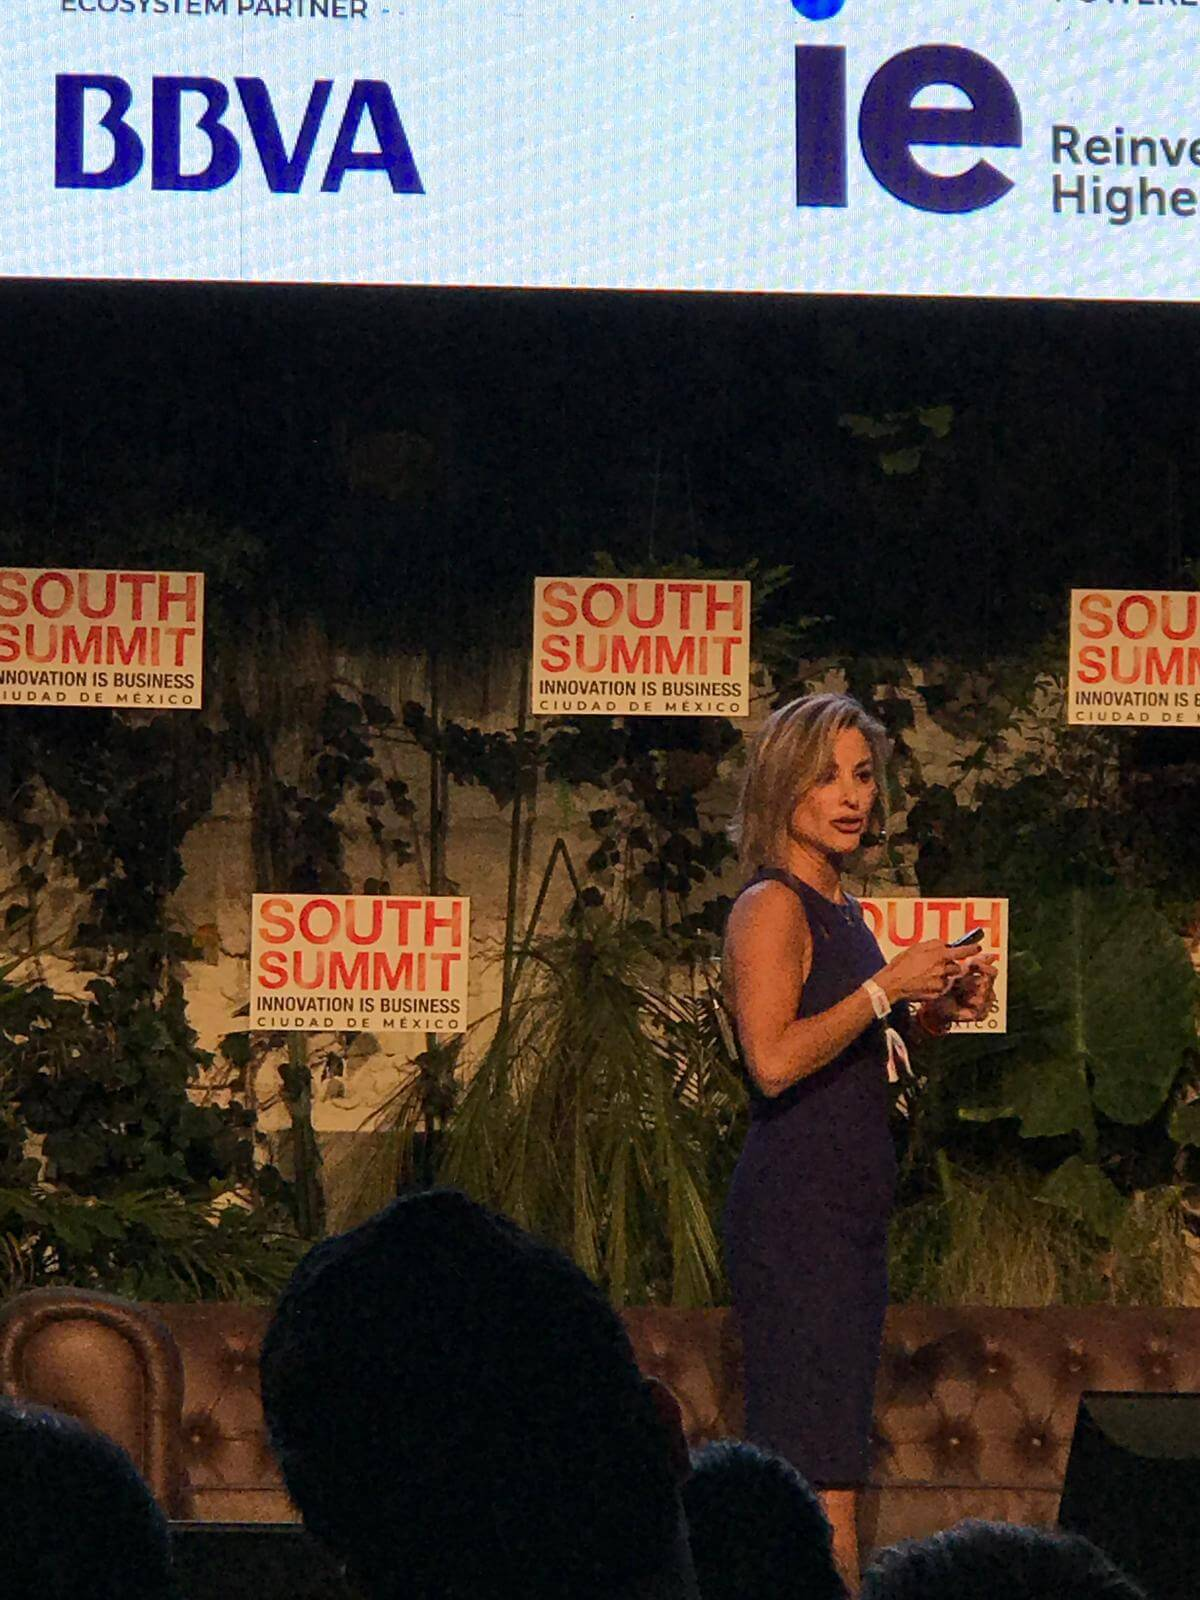 South Summit in Mexico City